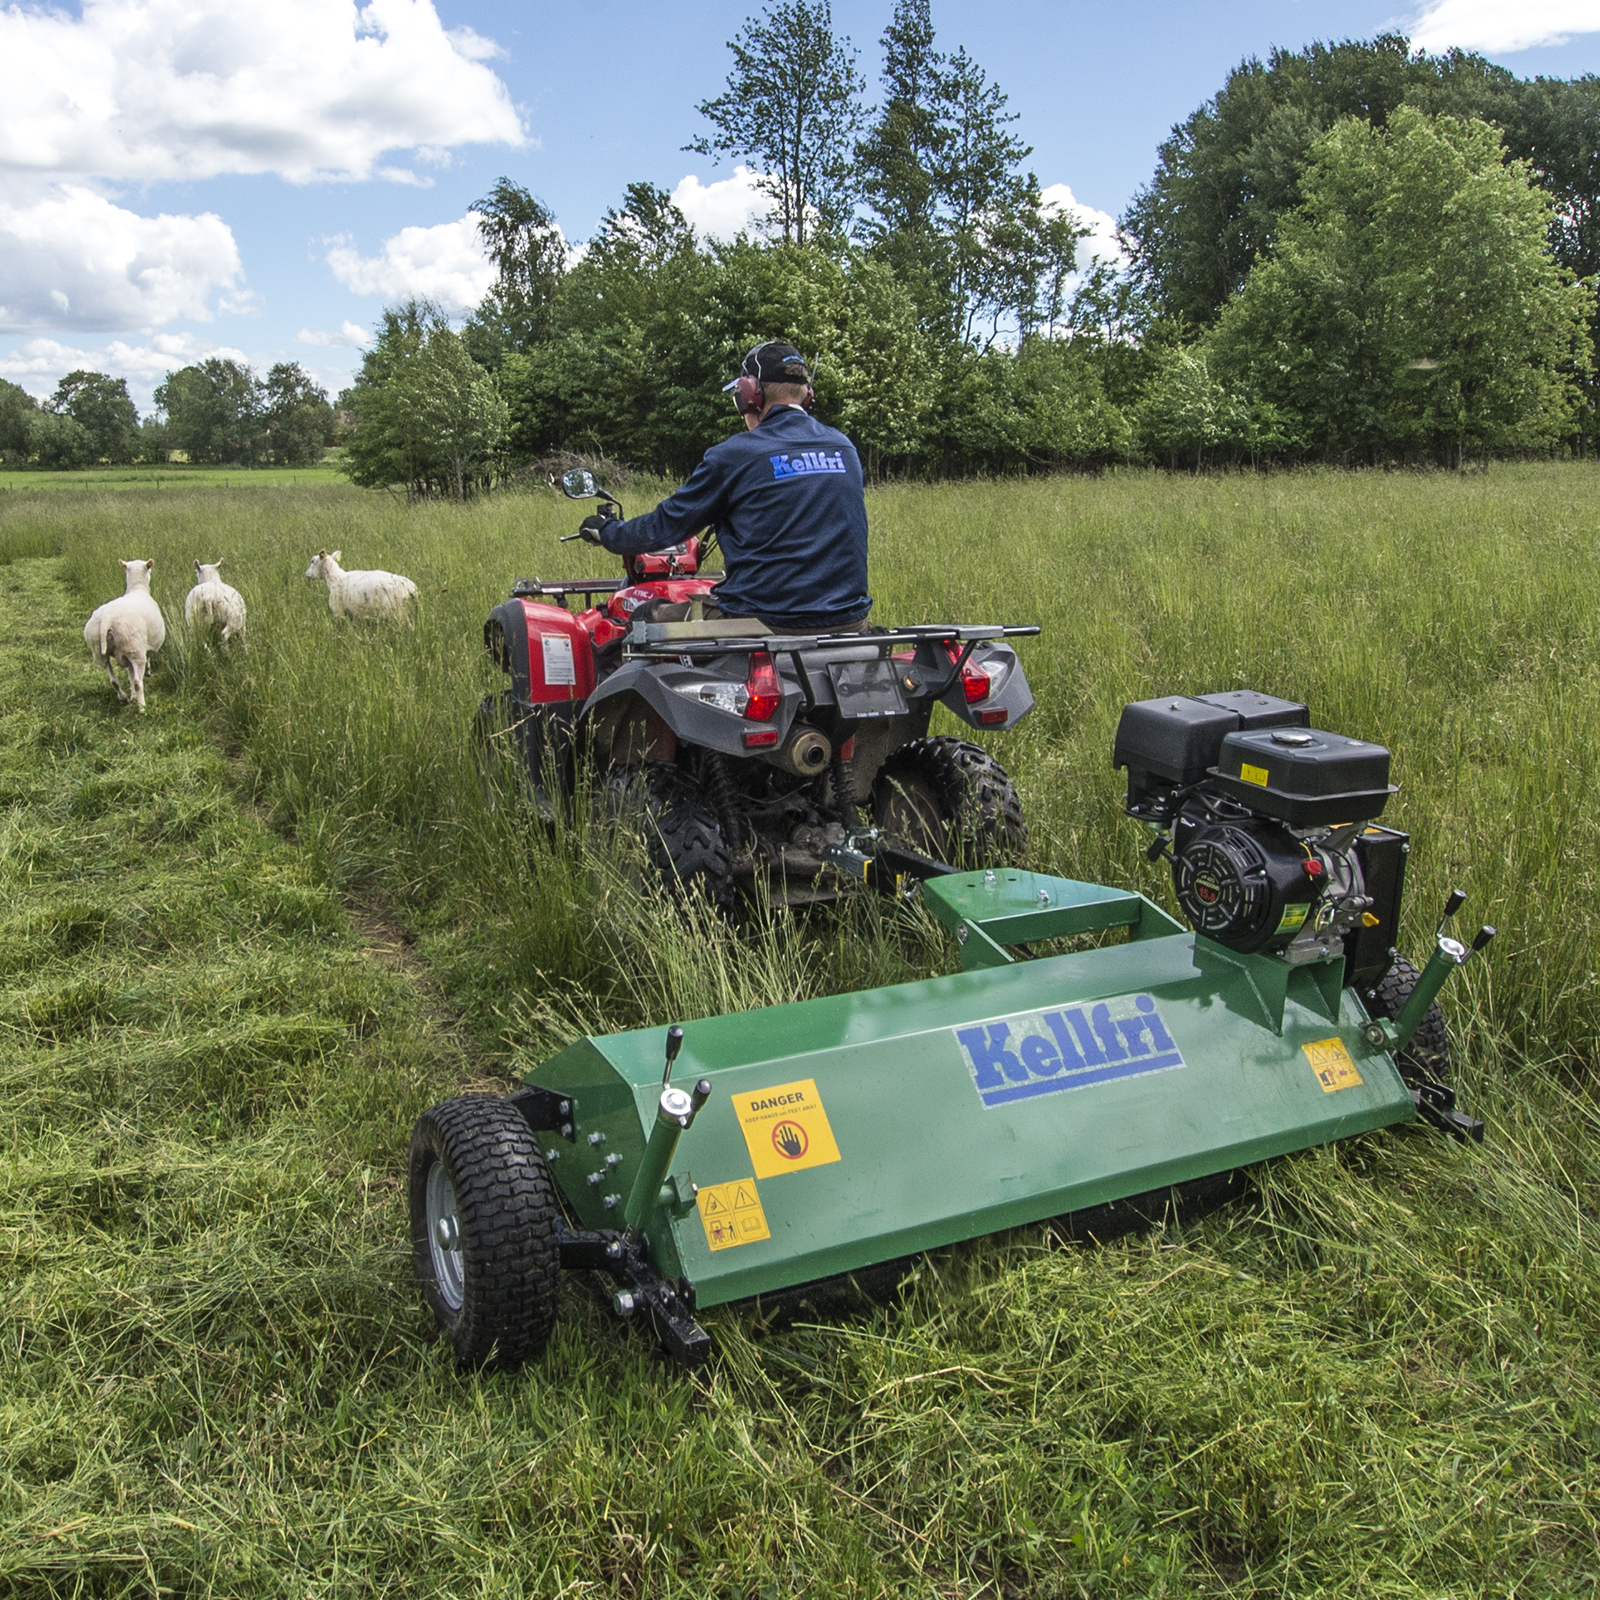 120cm ATV flail mower | Davies Implements